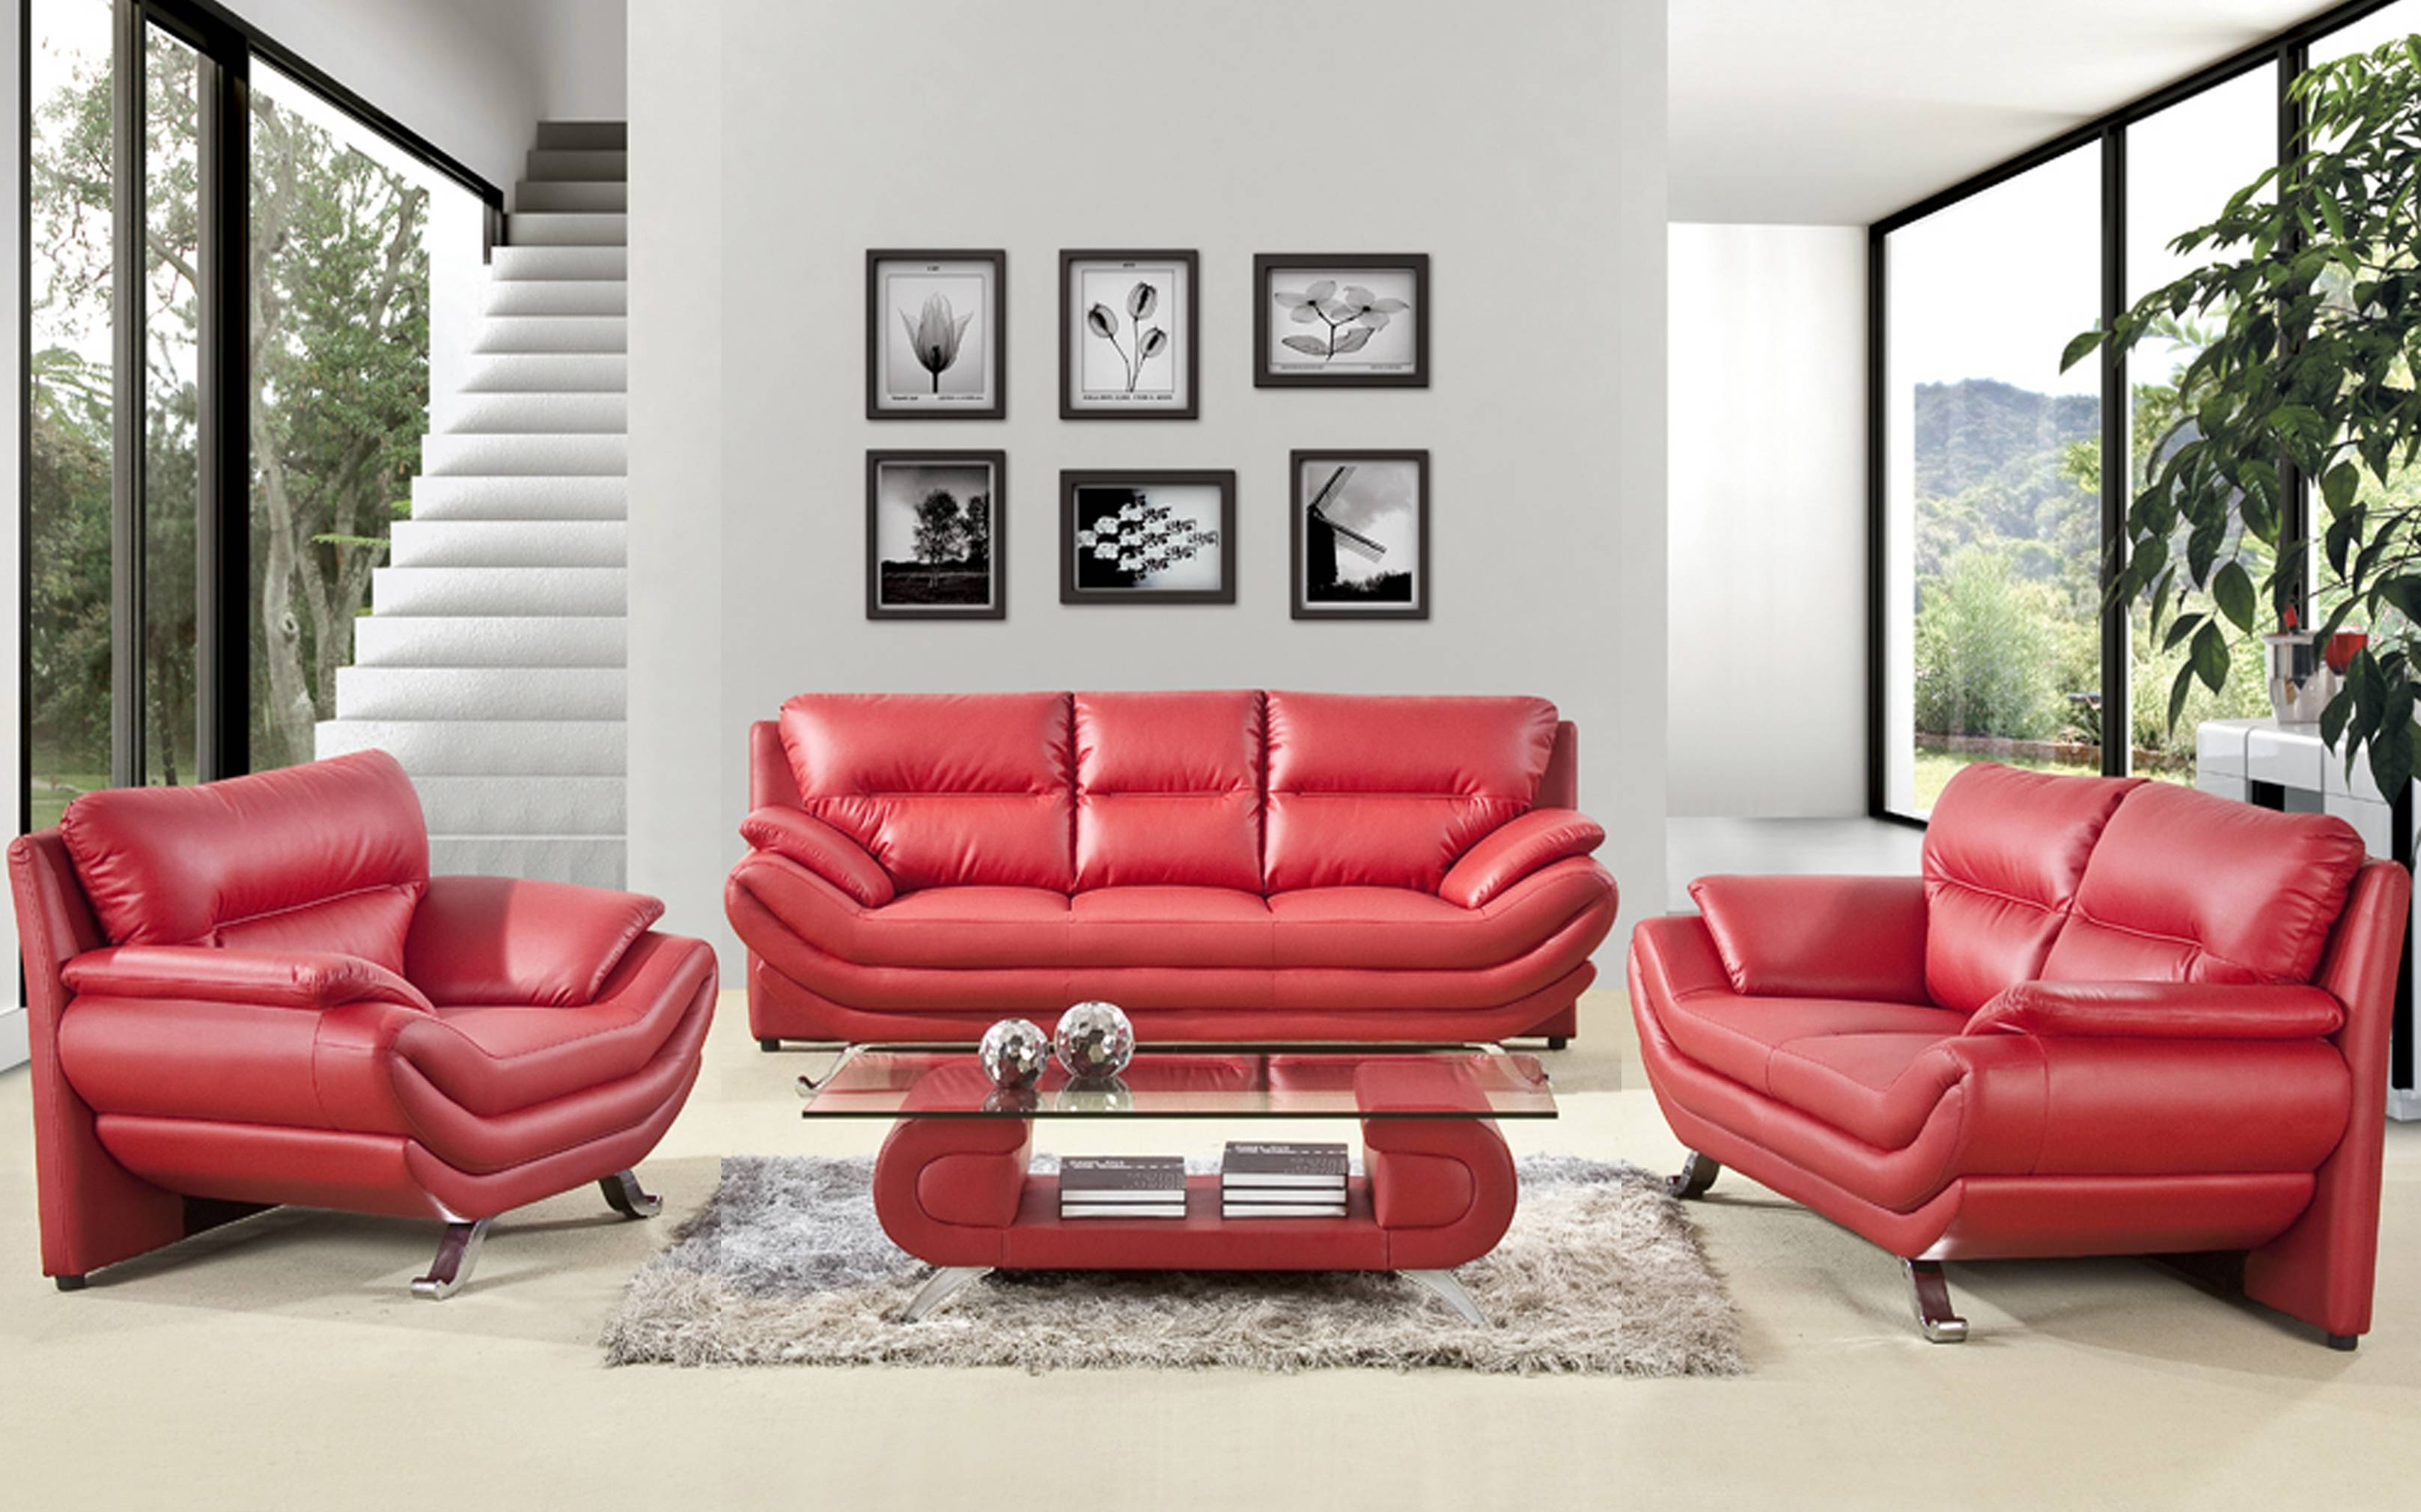 35 ~ Images Various Red Sofa Sets Pictures. Ambito.co regarding Red Sofa Chairs (Image 2 of 30)